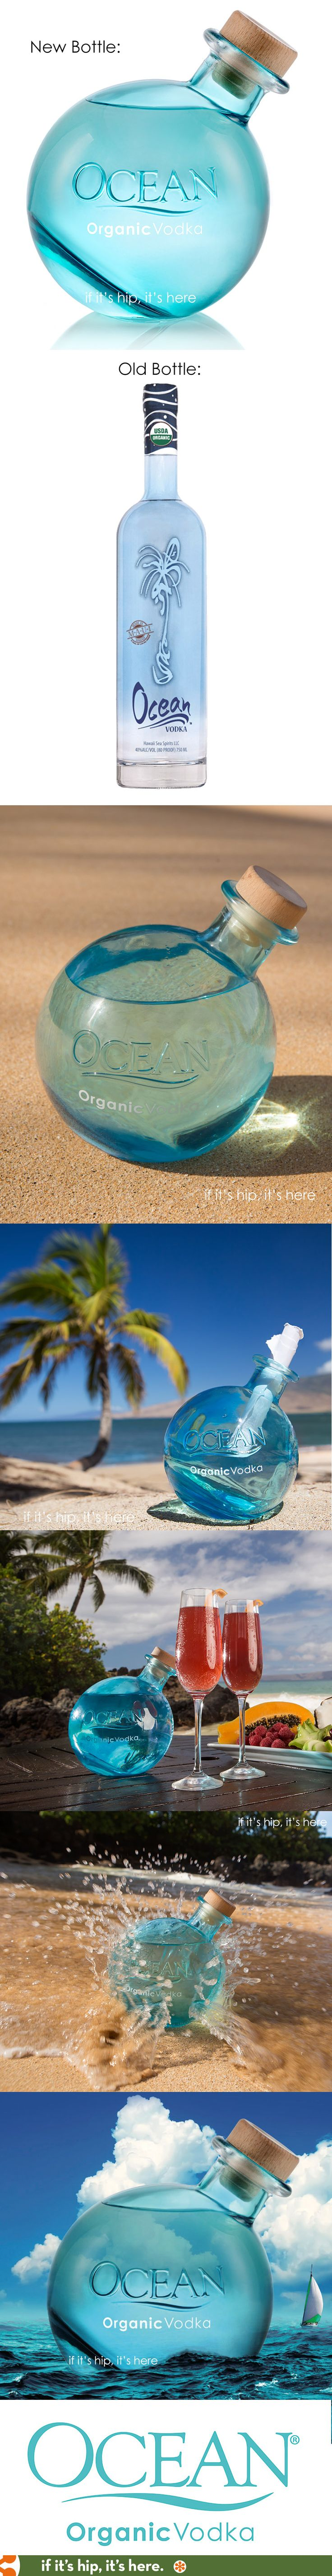 584 best ALCOHOL PACKAGING images on Pinterest